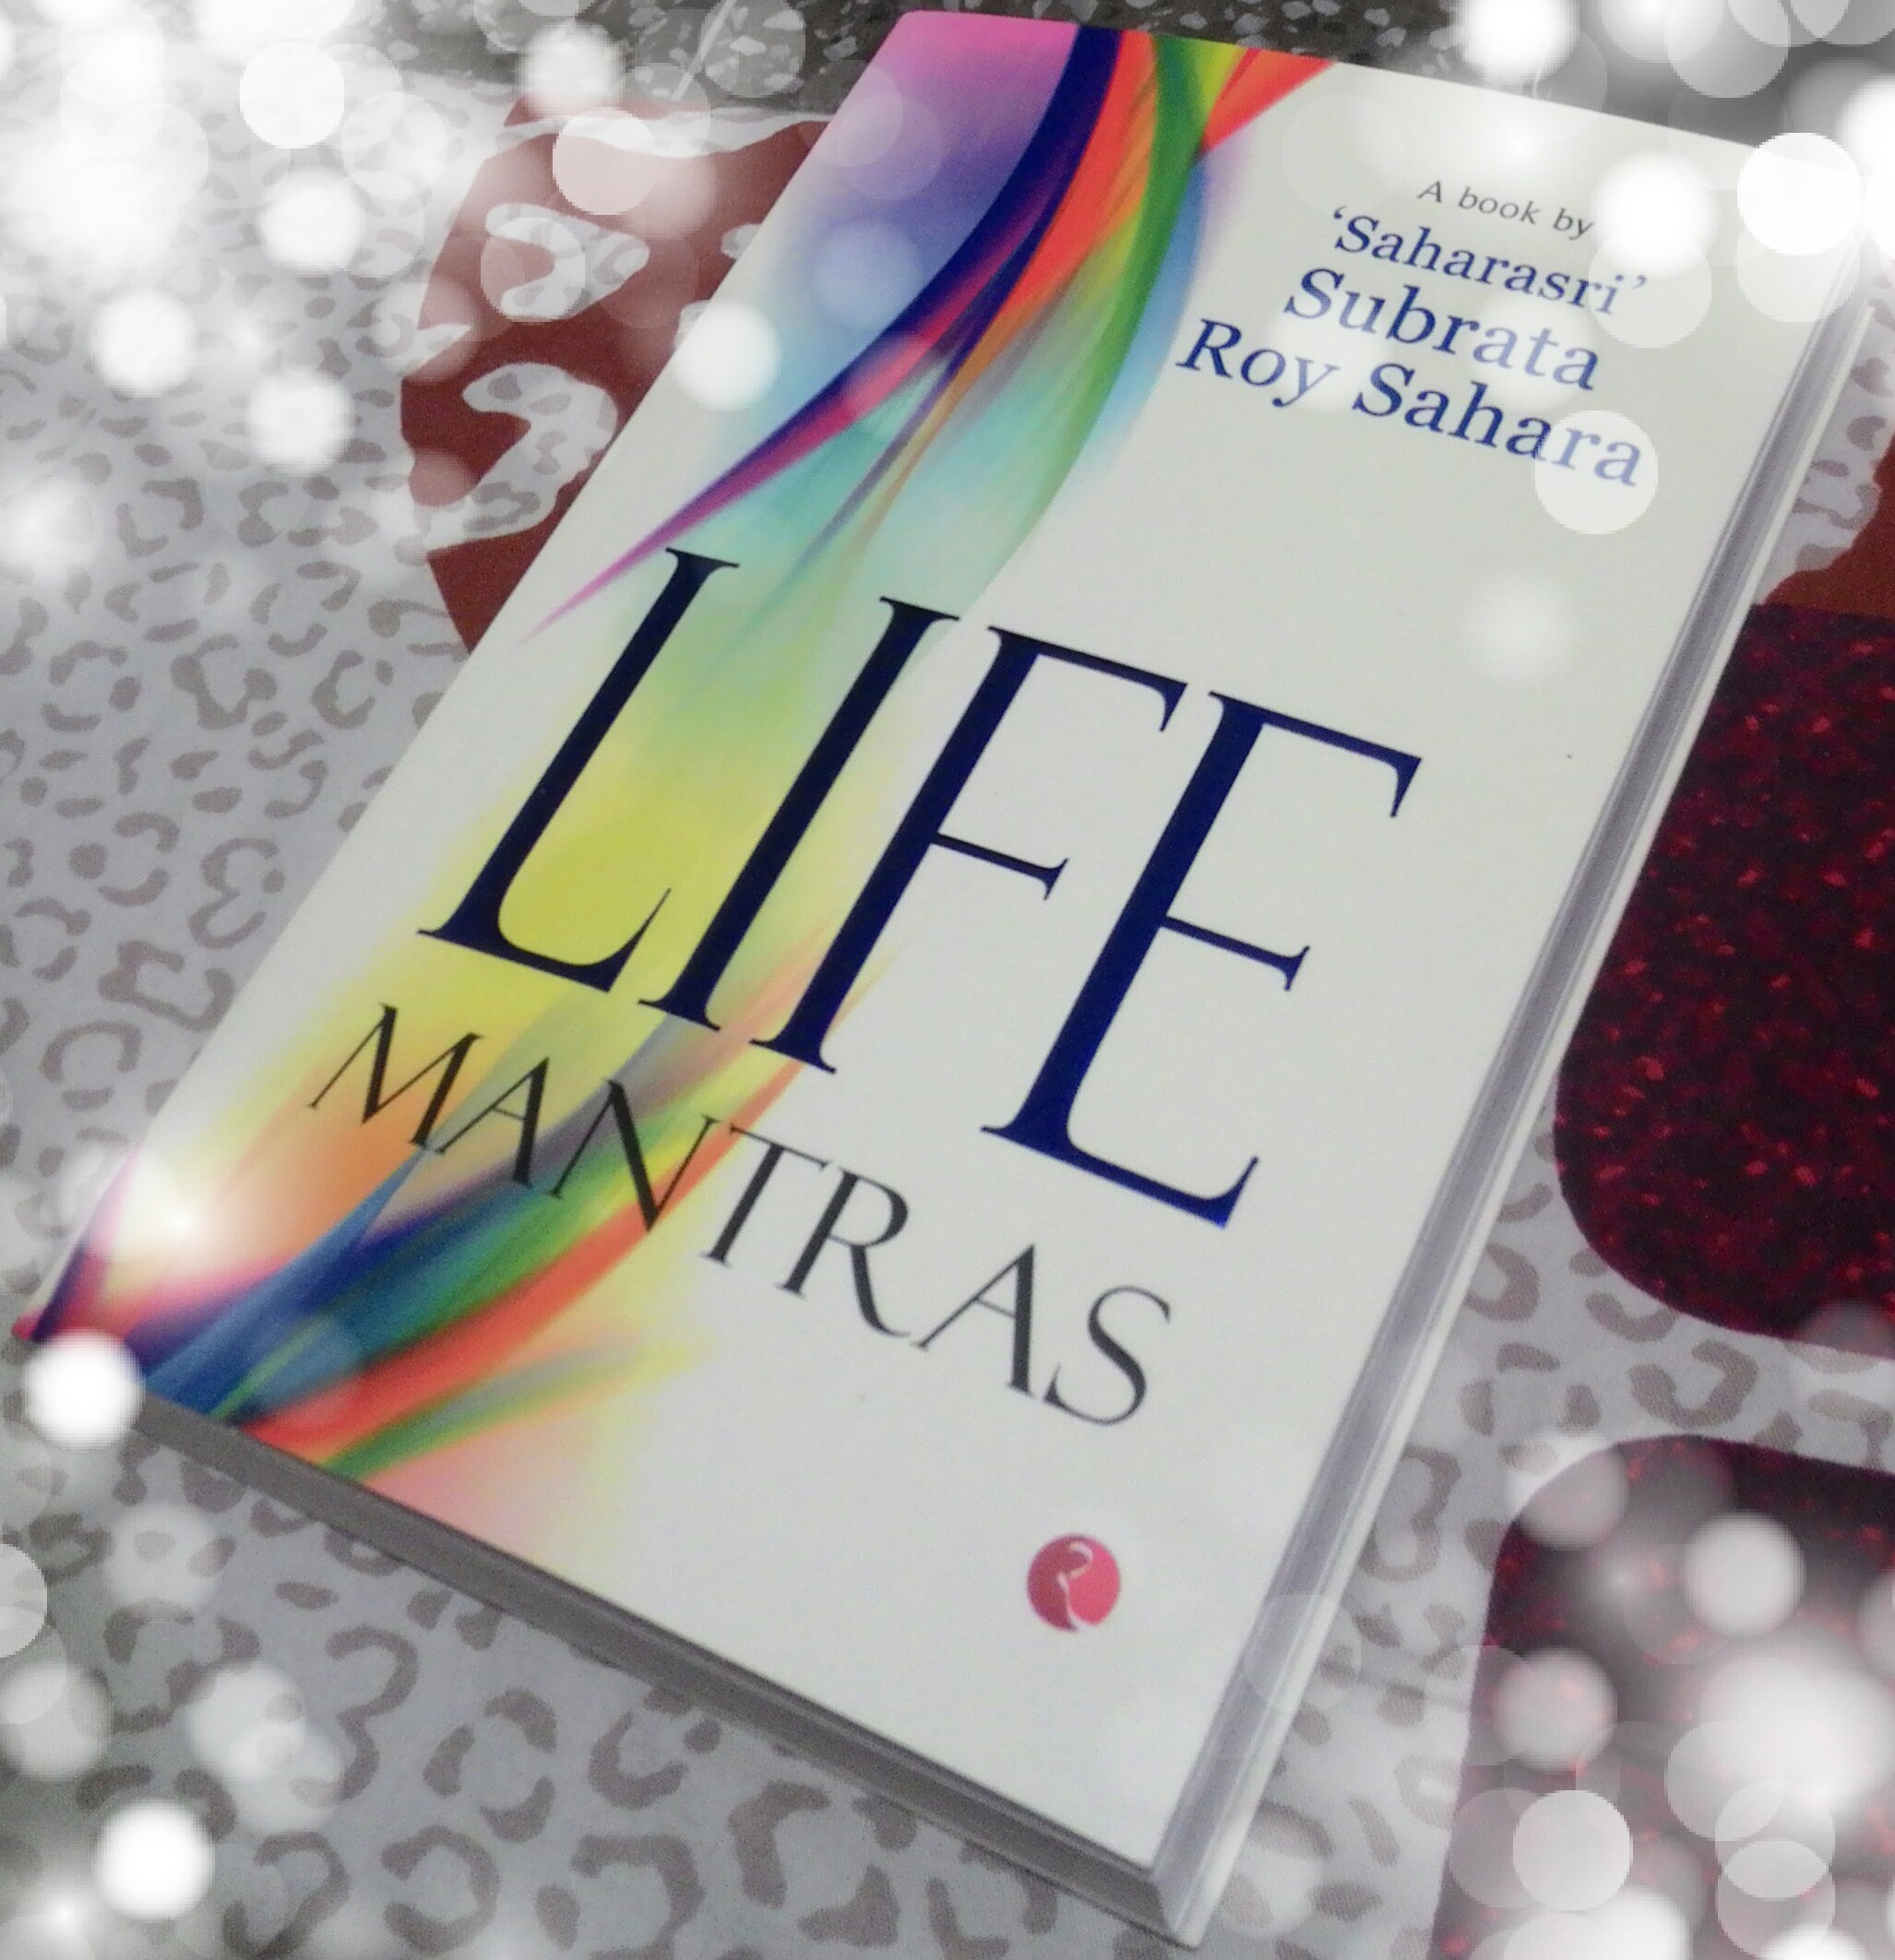 Life Mantras, Subrato Roy, Rupa Publications, Review